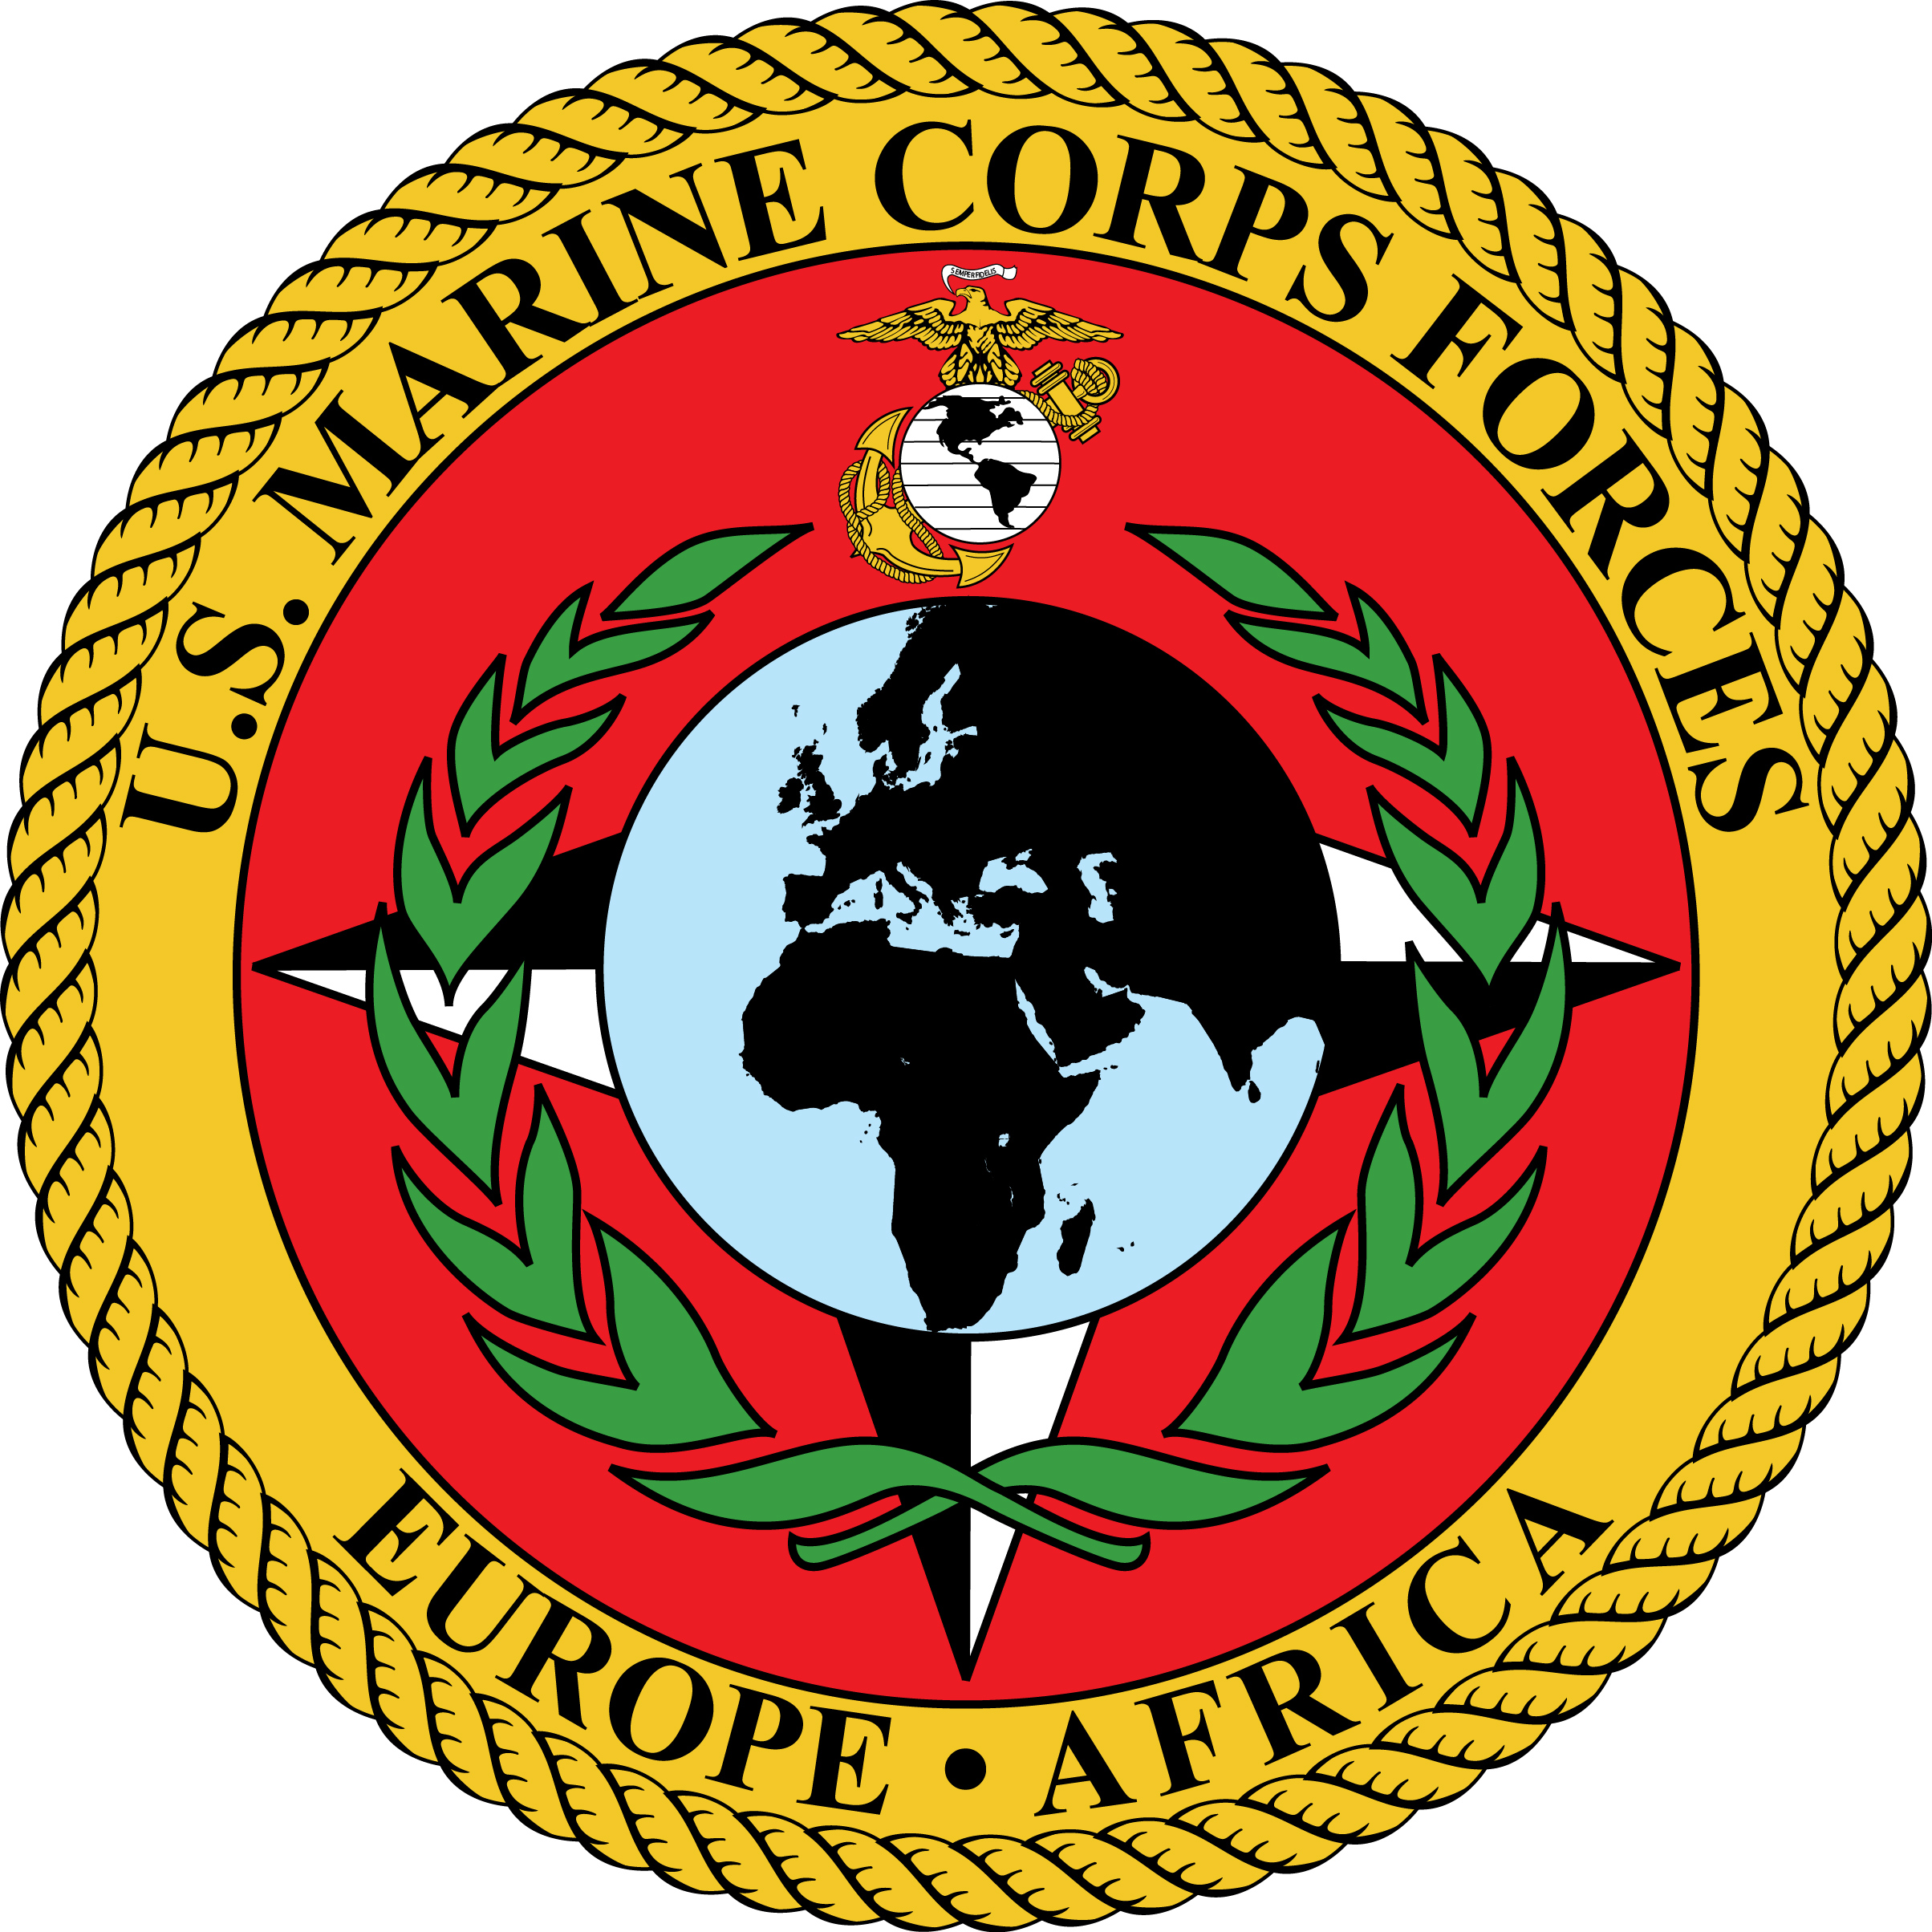 Supports EUCOM operations by advising the commander, other component commanders and task force commanders on the capabilities and proper employment of U.S. Marine Corps forces.